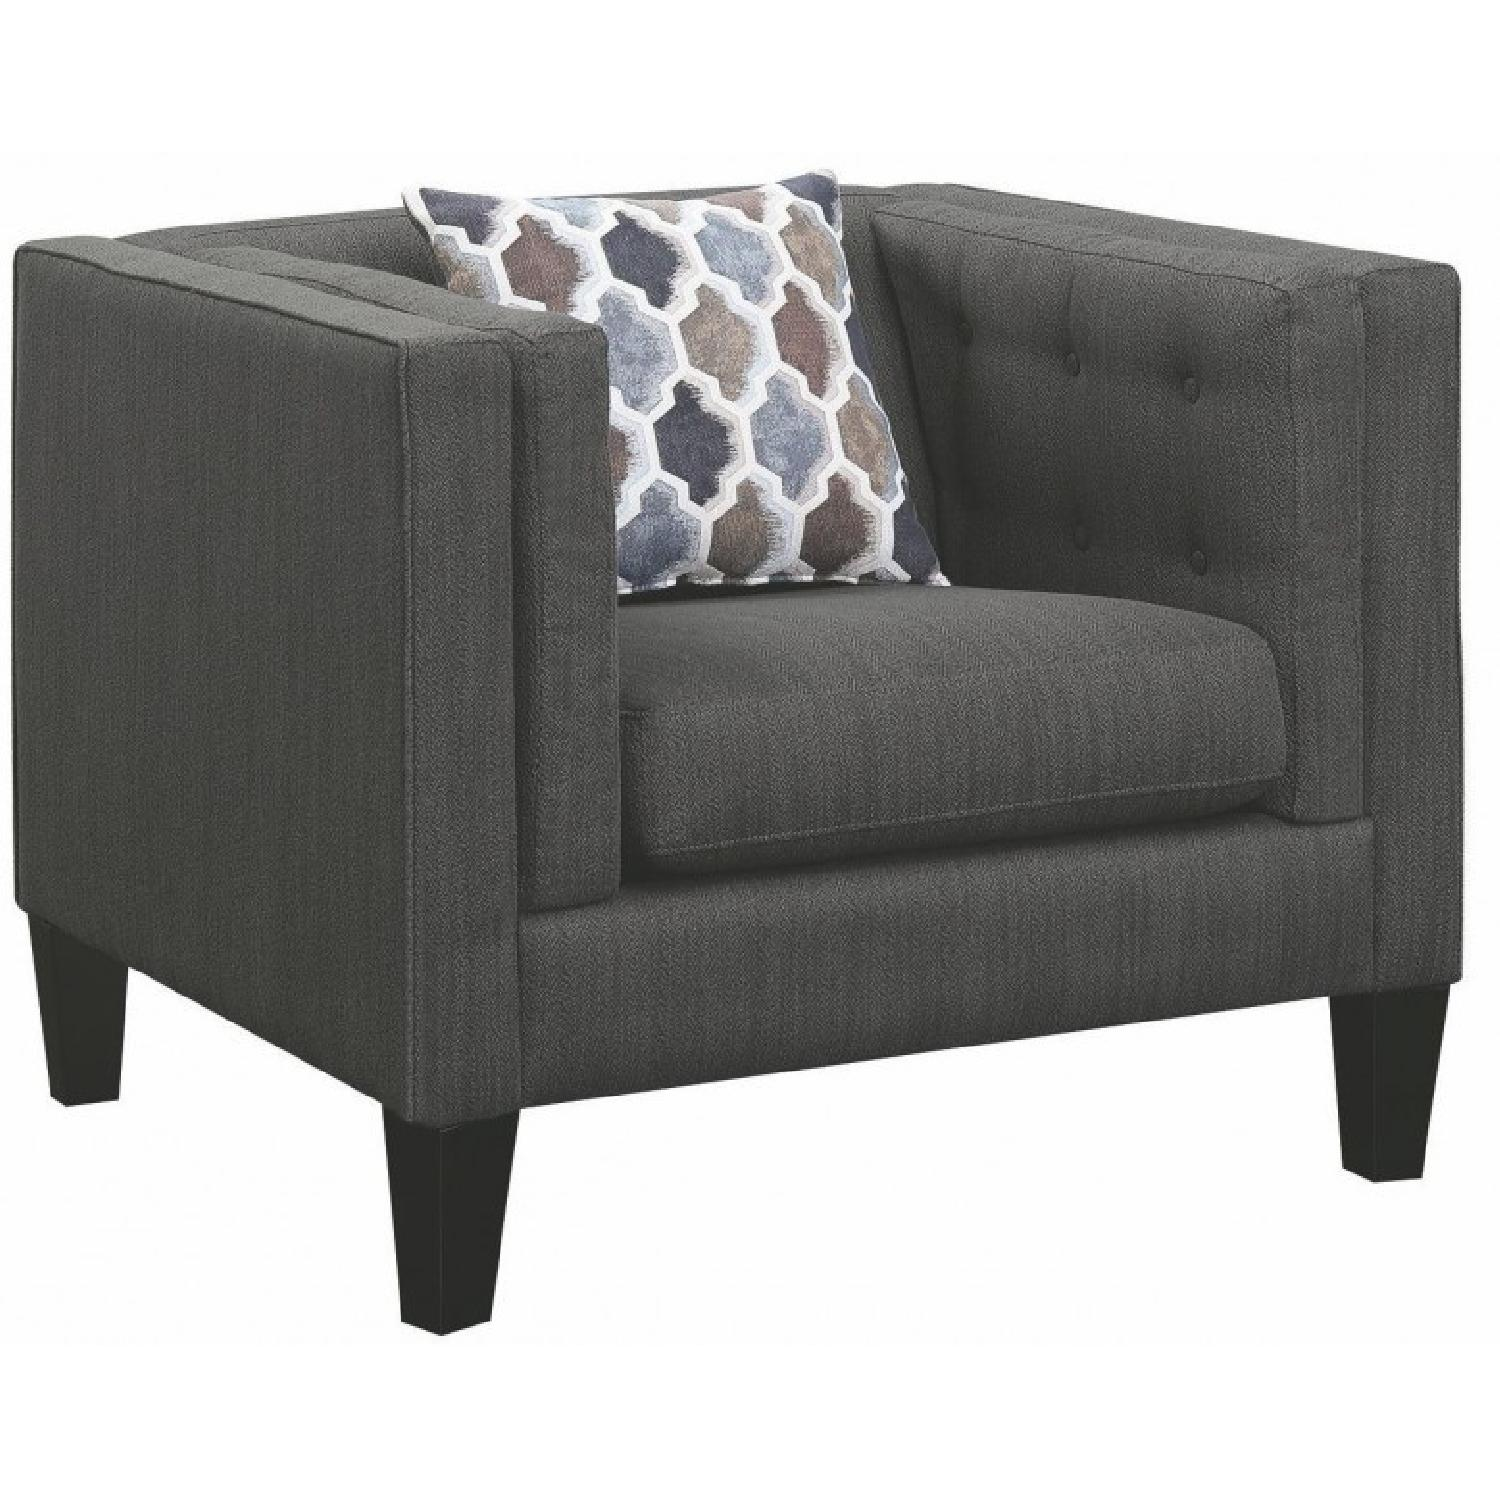 Modern Armchair in Dusty Blue Fabric w/ Double Pillow Arms